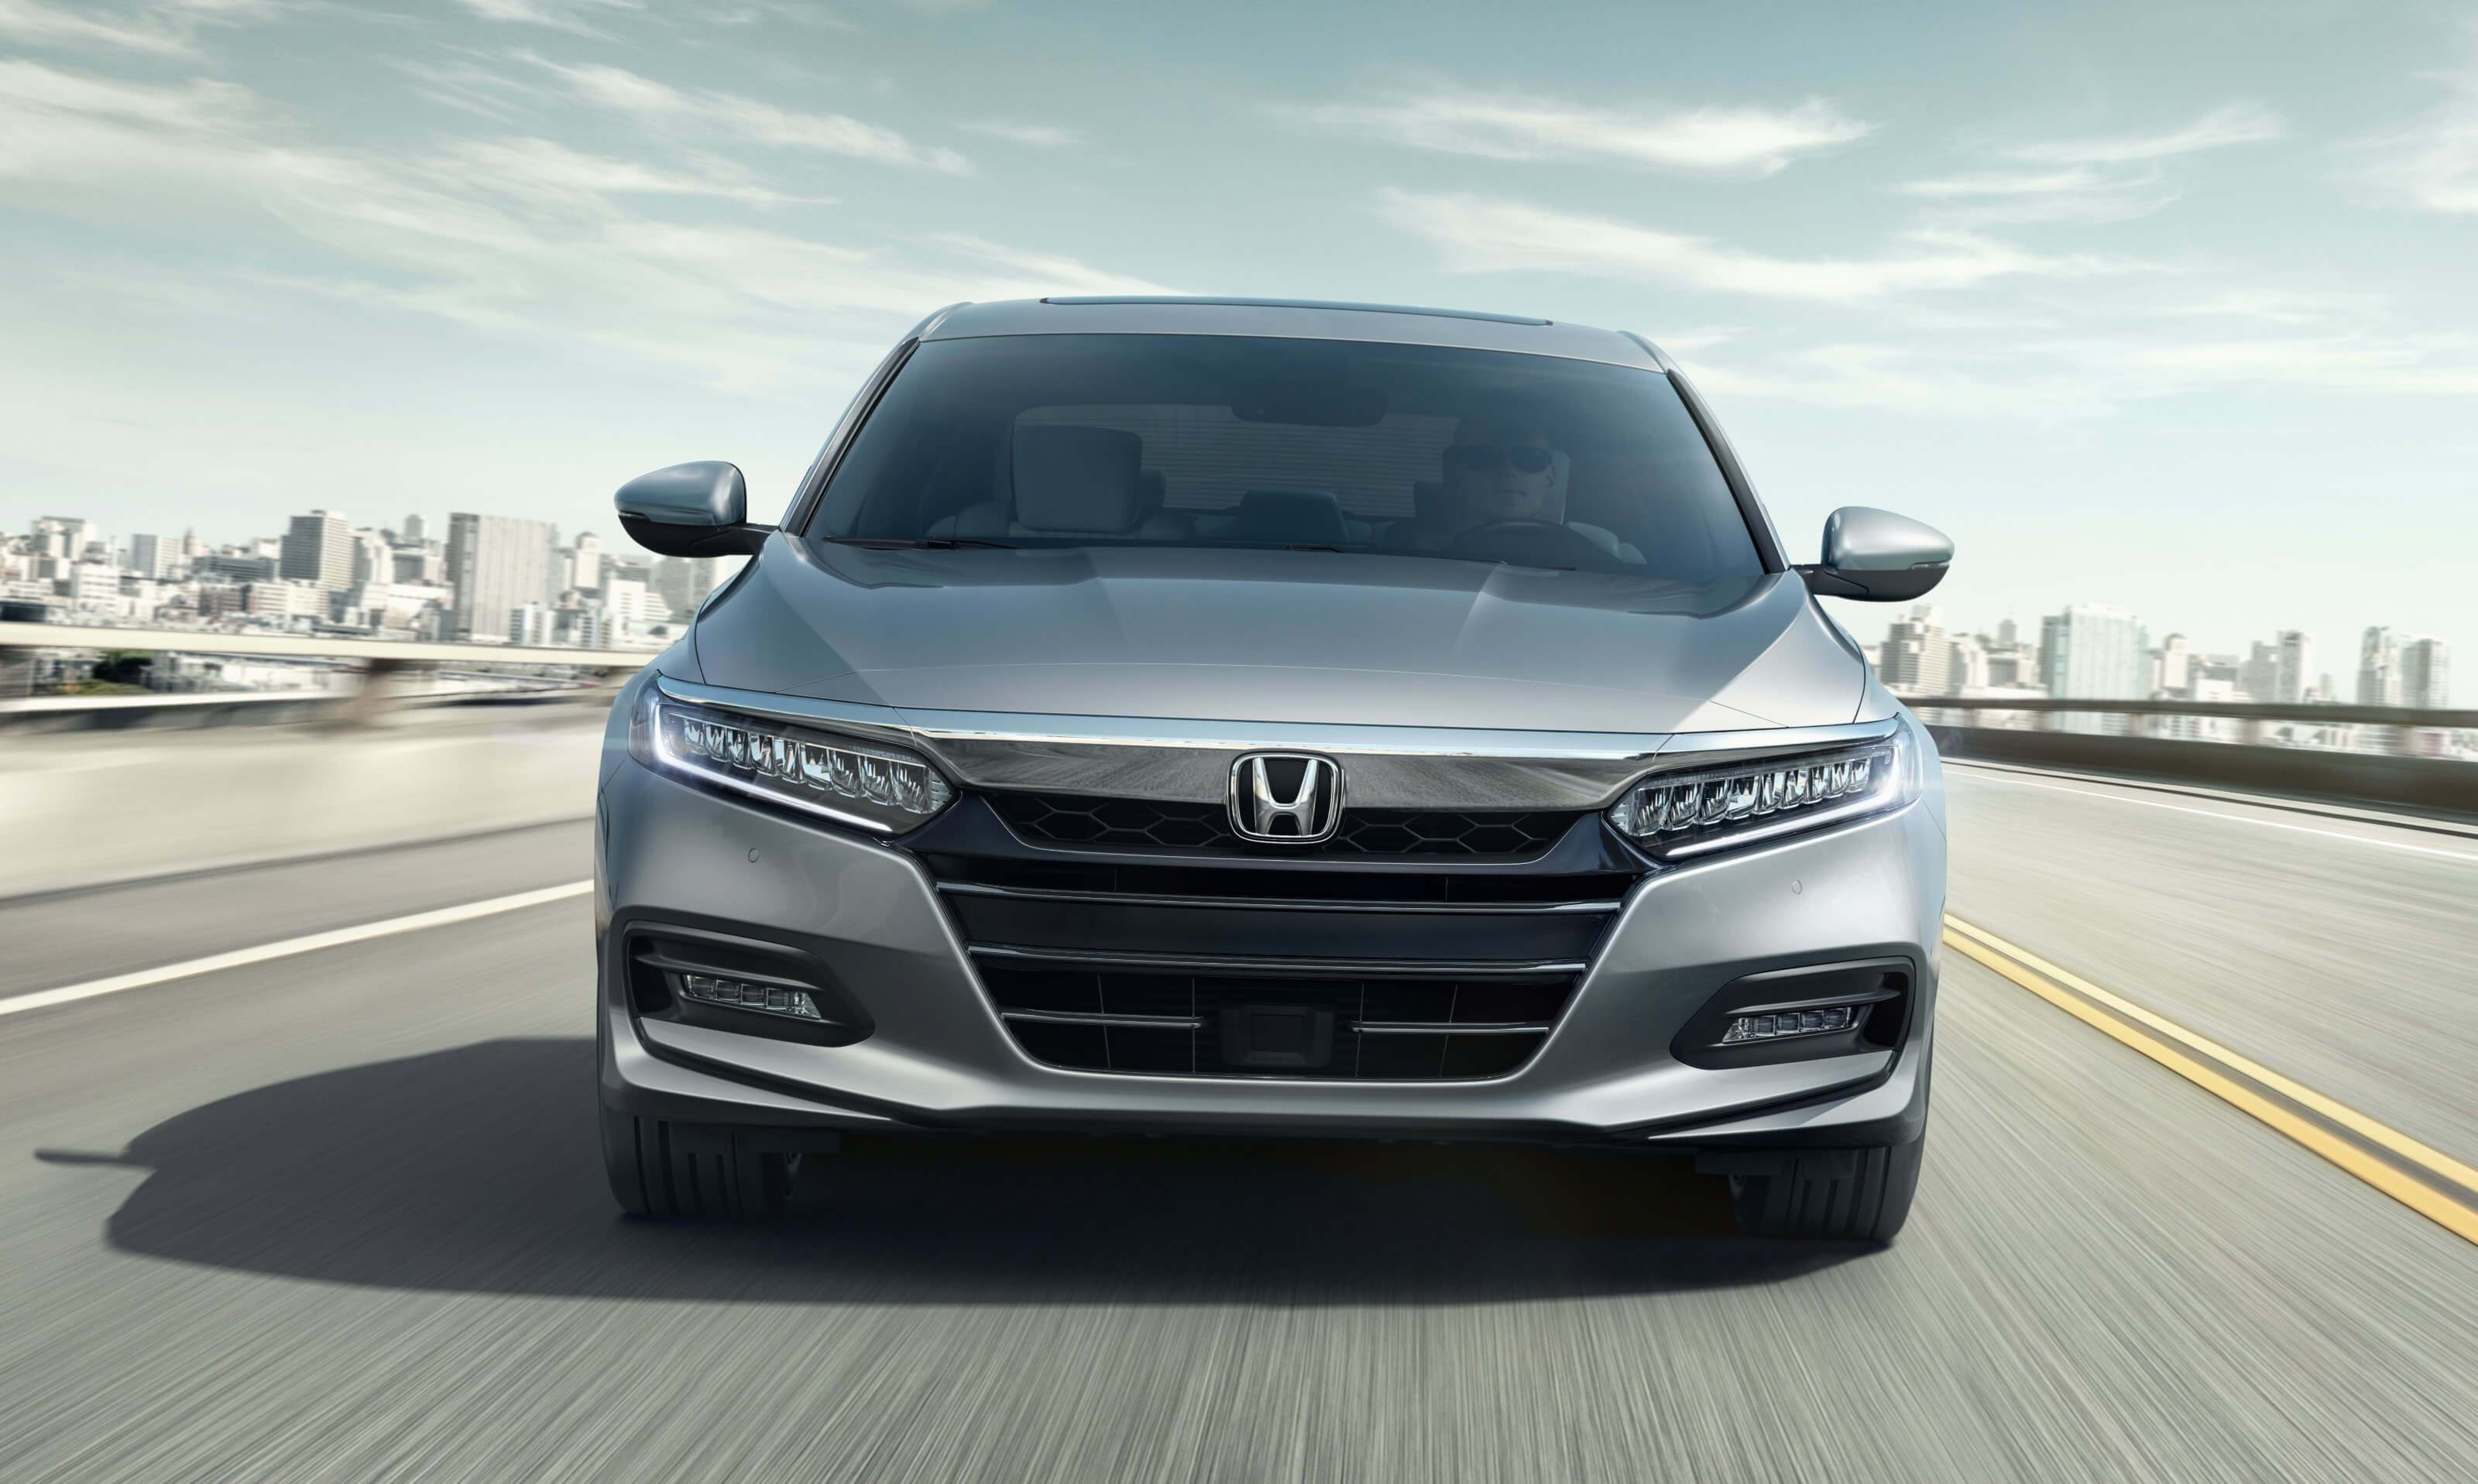 2020 Honda  Accord front exterior view